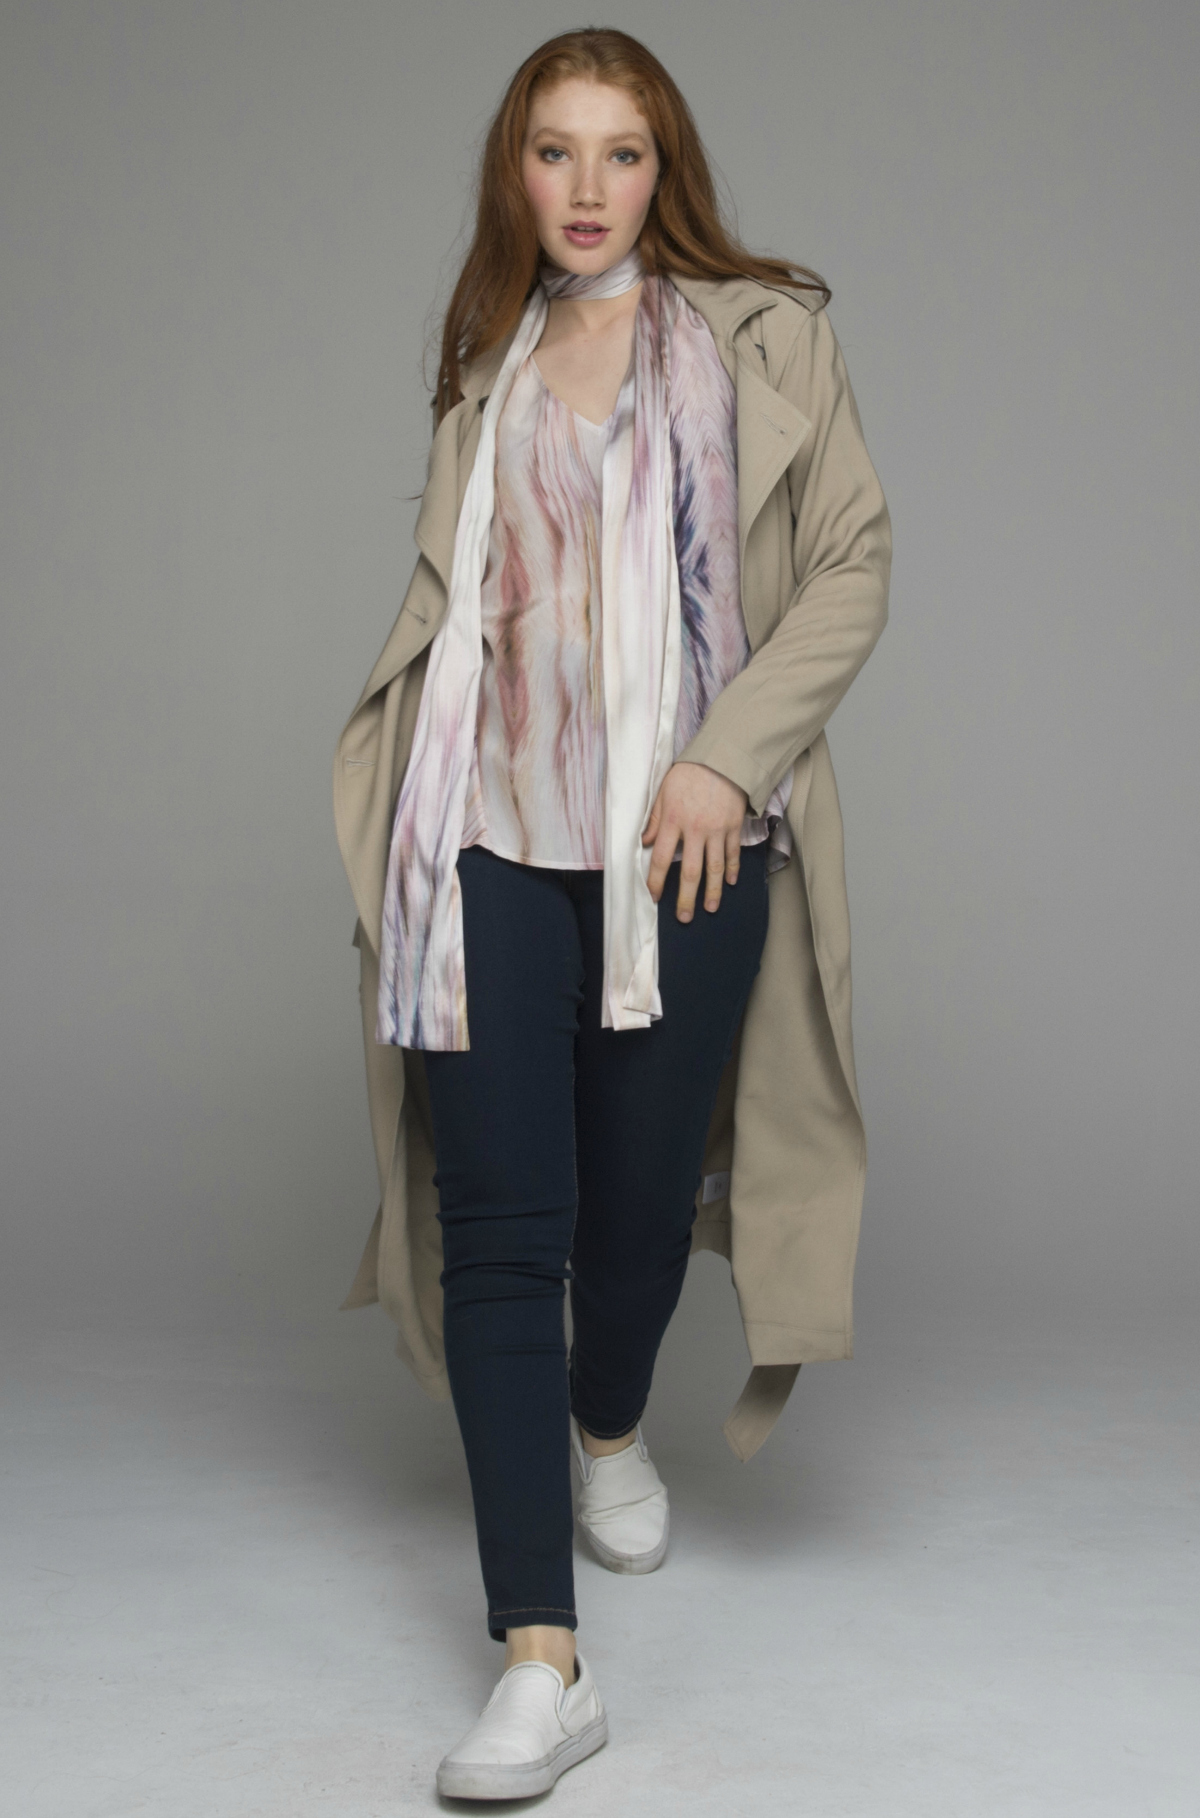 Beech and Bird trench, top, scarf and jeans | FRANKiE4 Footwear SALLi boots | Nicole Fendel earrings and cuff